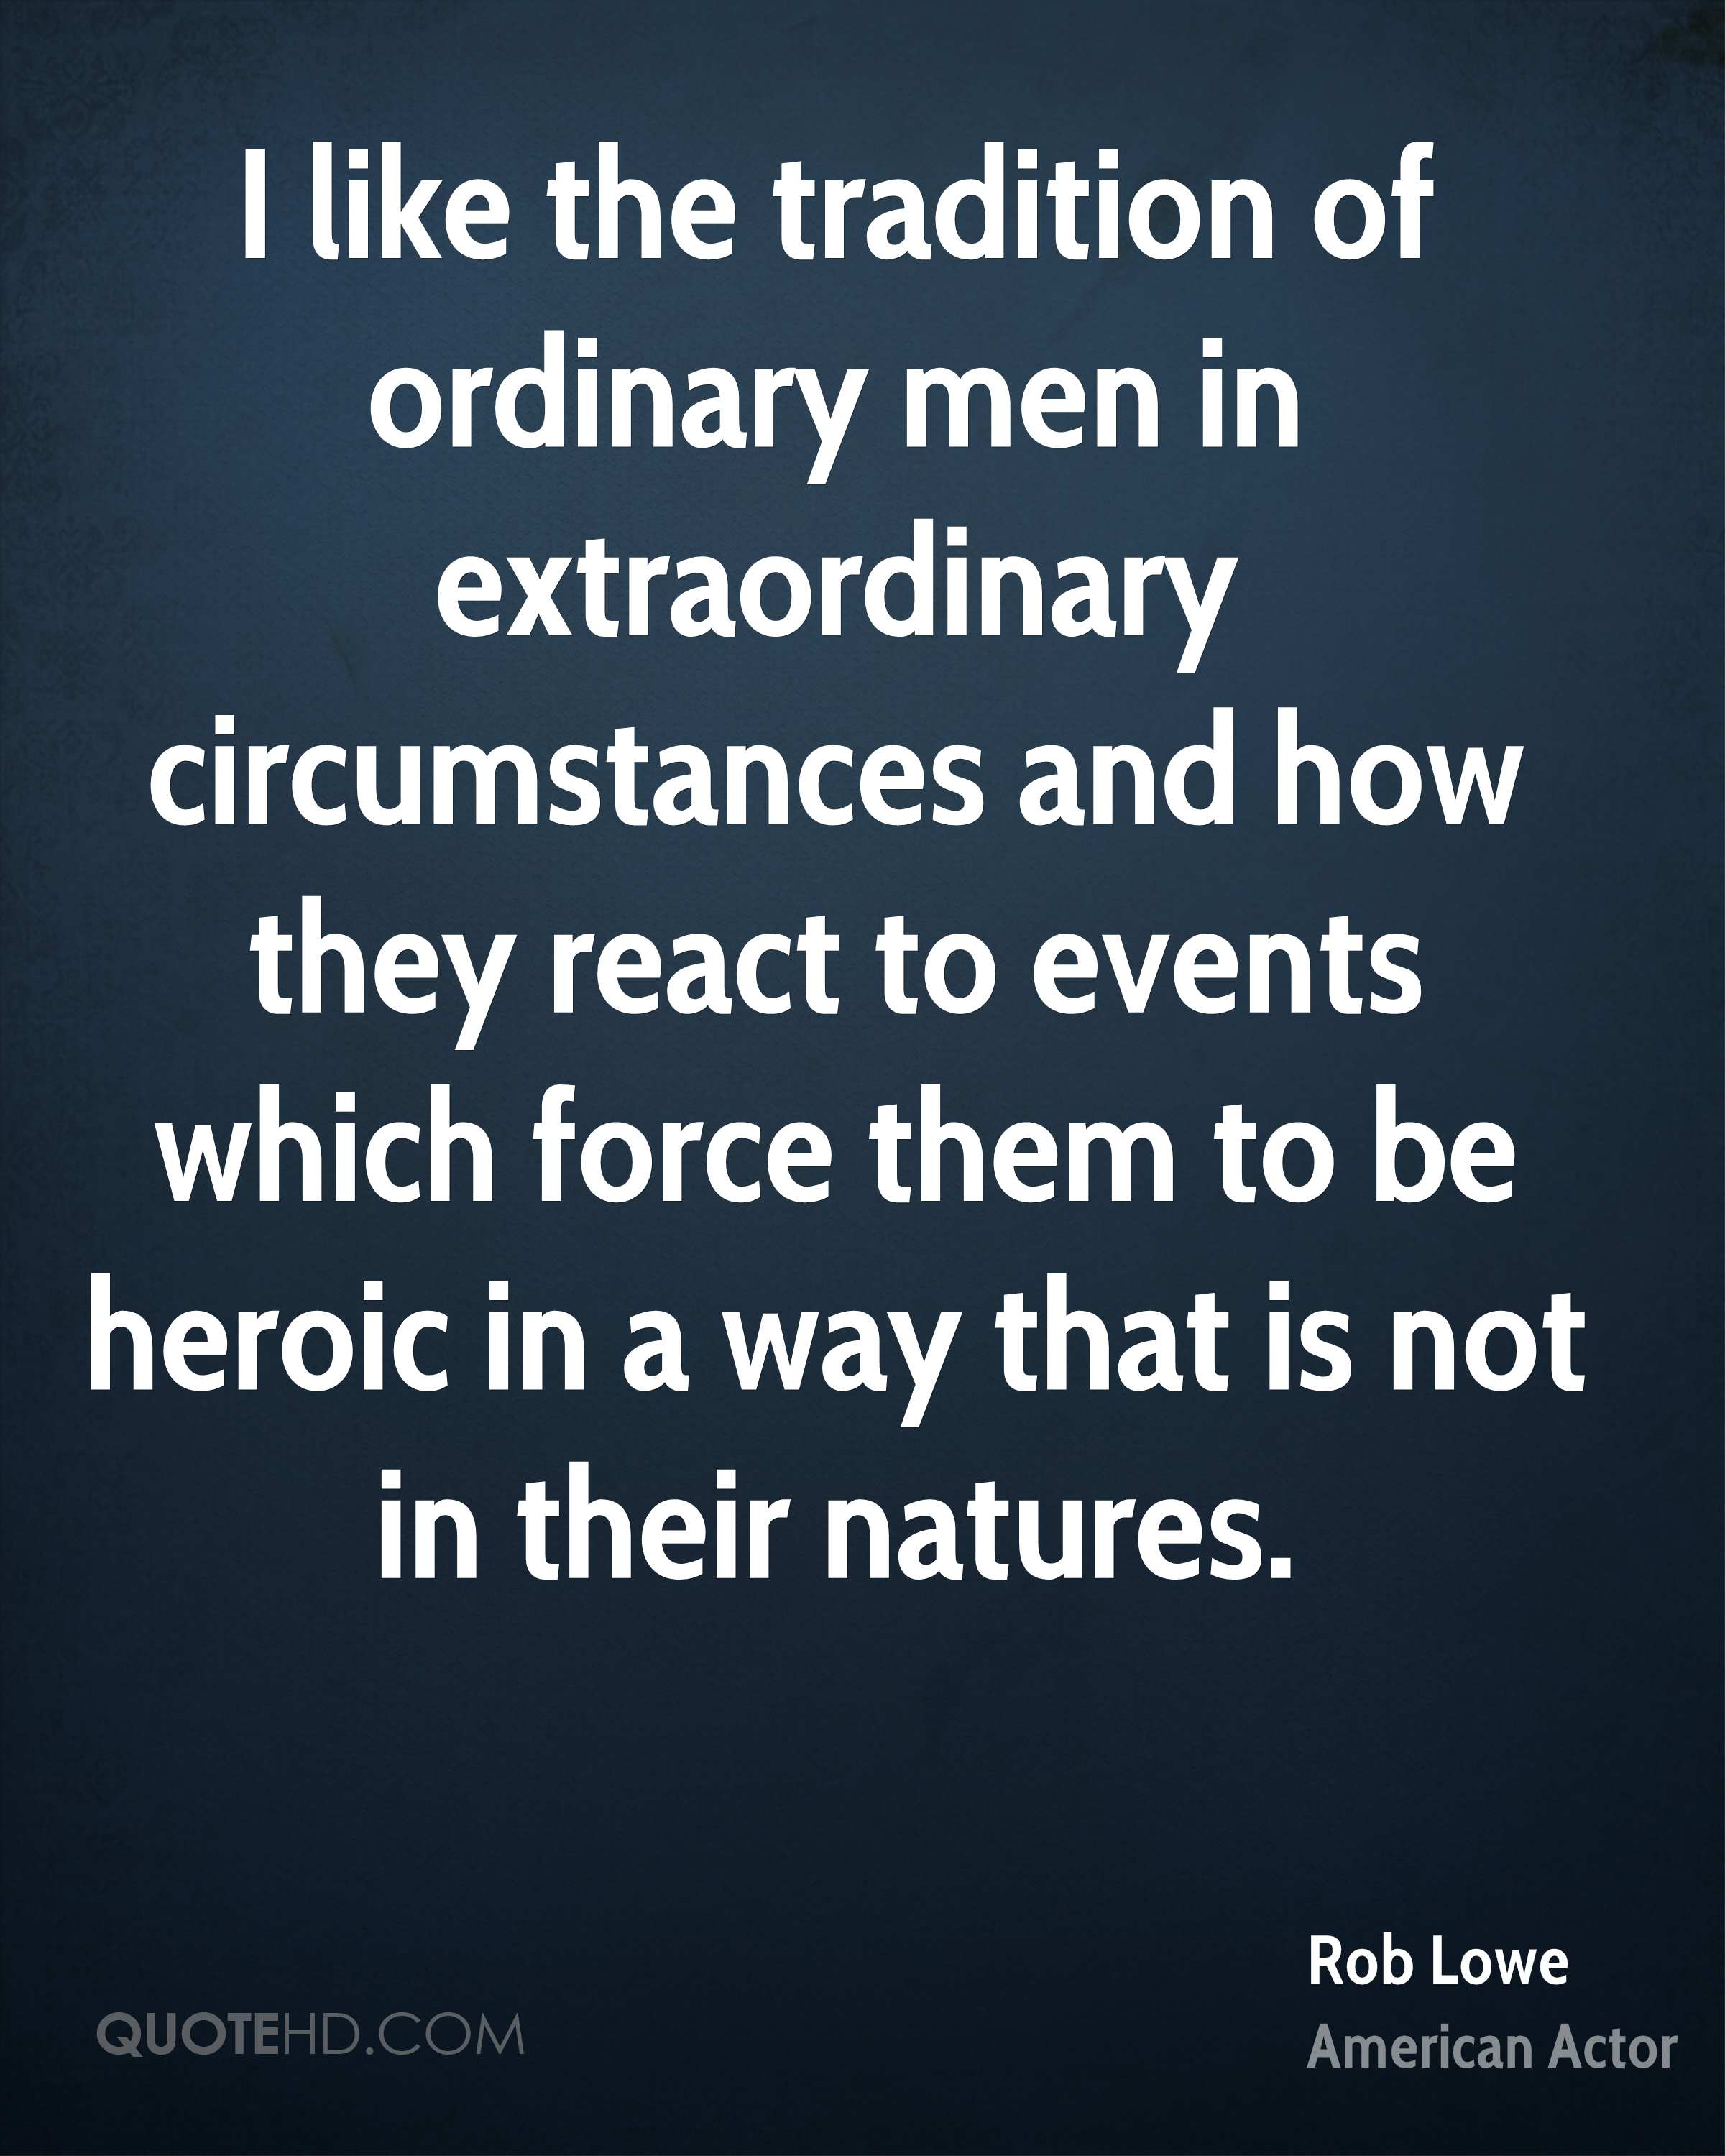 I like the tradition of ordinary men in extraordinary circumstances and how they react to events which force them to be heroic in a way that is not in their natures.